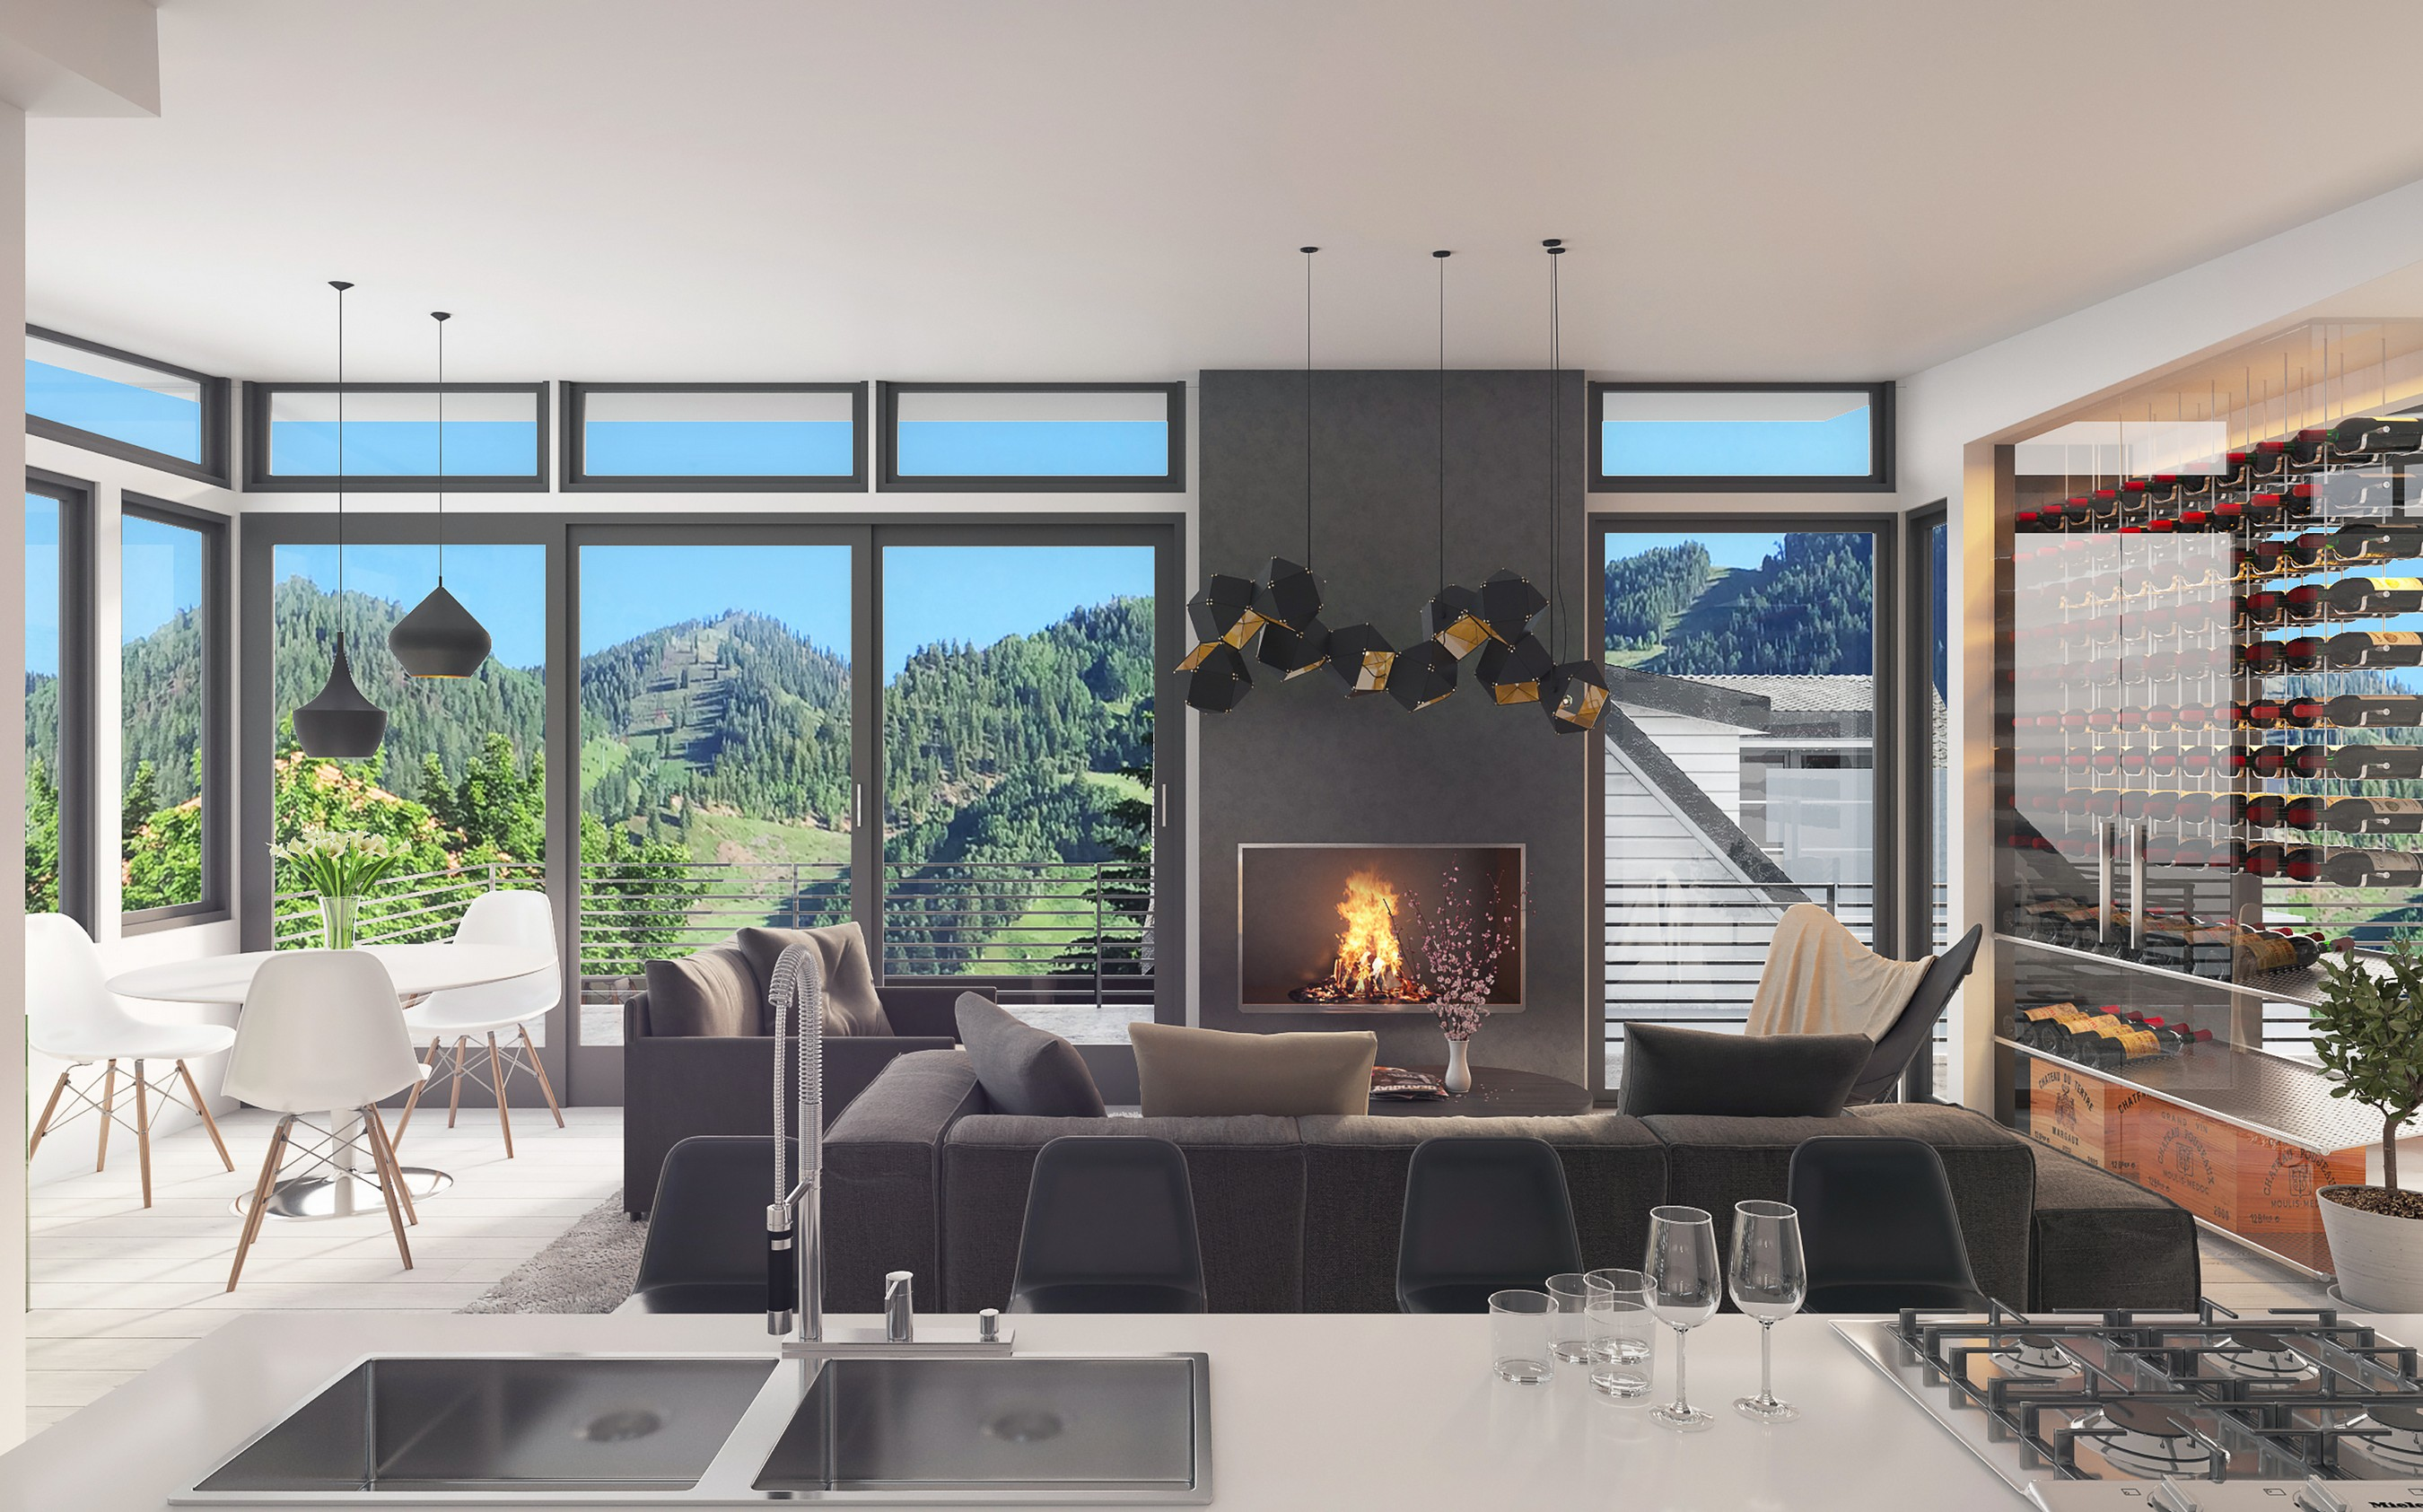 Duplex for Sale at Modern West End Duplex 203 North Monarch Street West End, Aspen, Colorado, 81611 United States